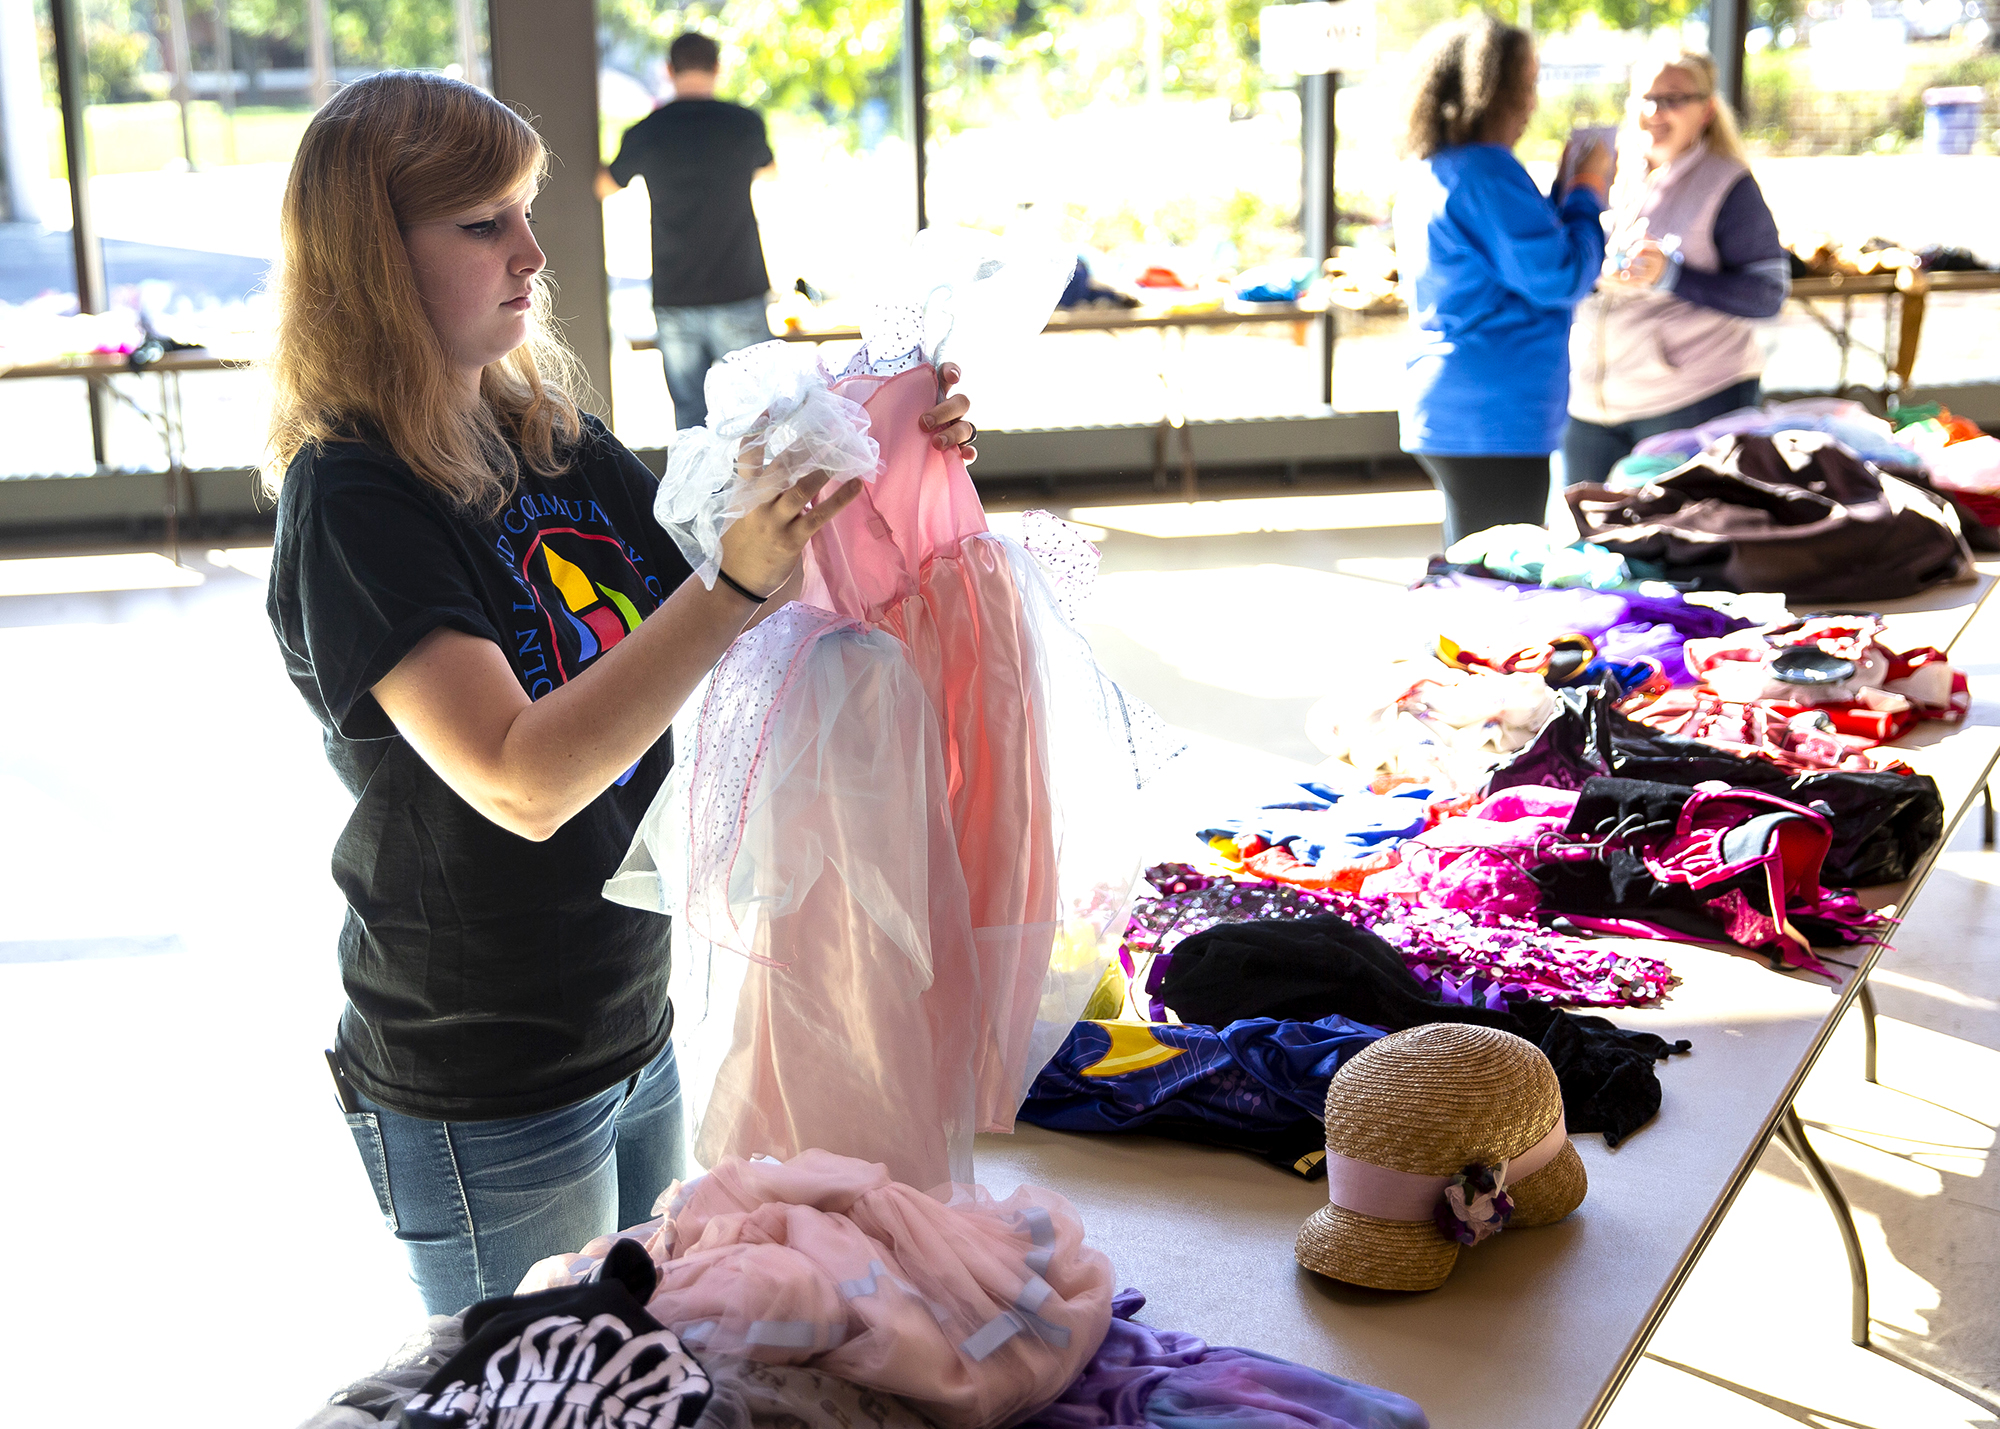 """Liz Davis sorts Halloween costumes on a table in the Lincolns Commons at Lincoln Land Community College during the Bootique costume giveaway Saturday, Oct. 20, 2018 in Springfield, Ill. Davis, an LLCC student who is the Honors Program president, came up with the idea last year to collect gently used costumes for families to pick up as needed. """"It's my favorite holiday and I wanted to share,"""" Davis says. The student organization this year collected 138 costumes and about 80 accessory pieces for the event. [Rich Saal/The State Journal-Register]"""